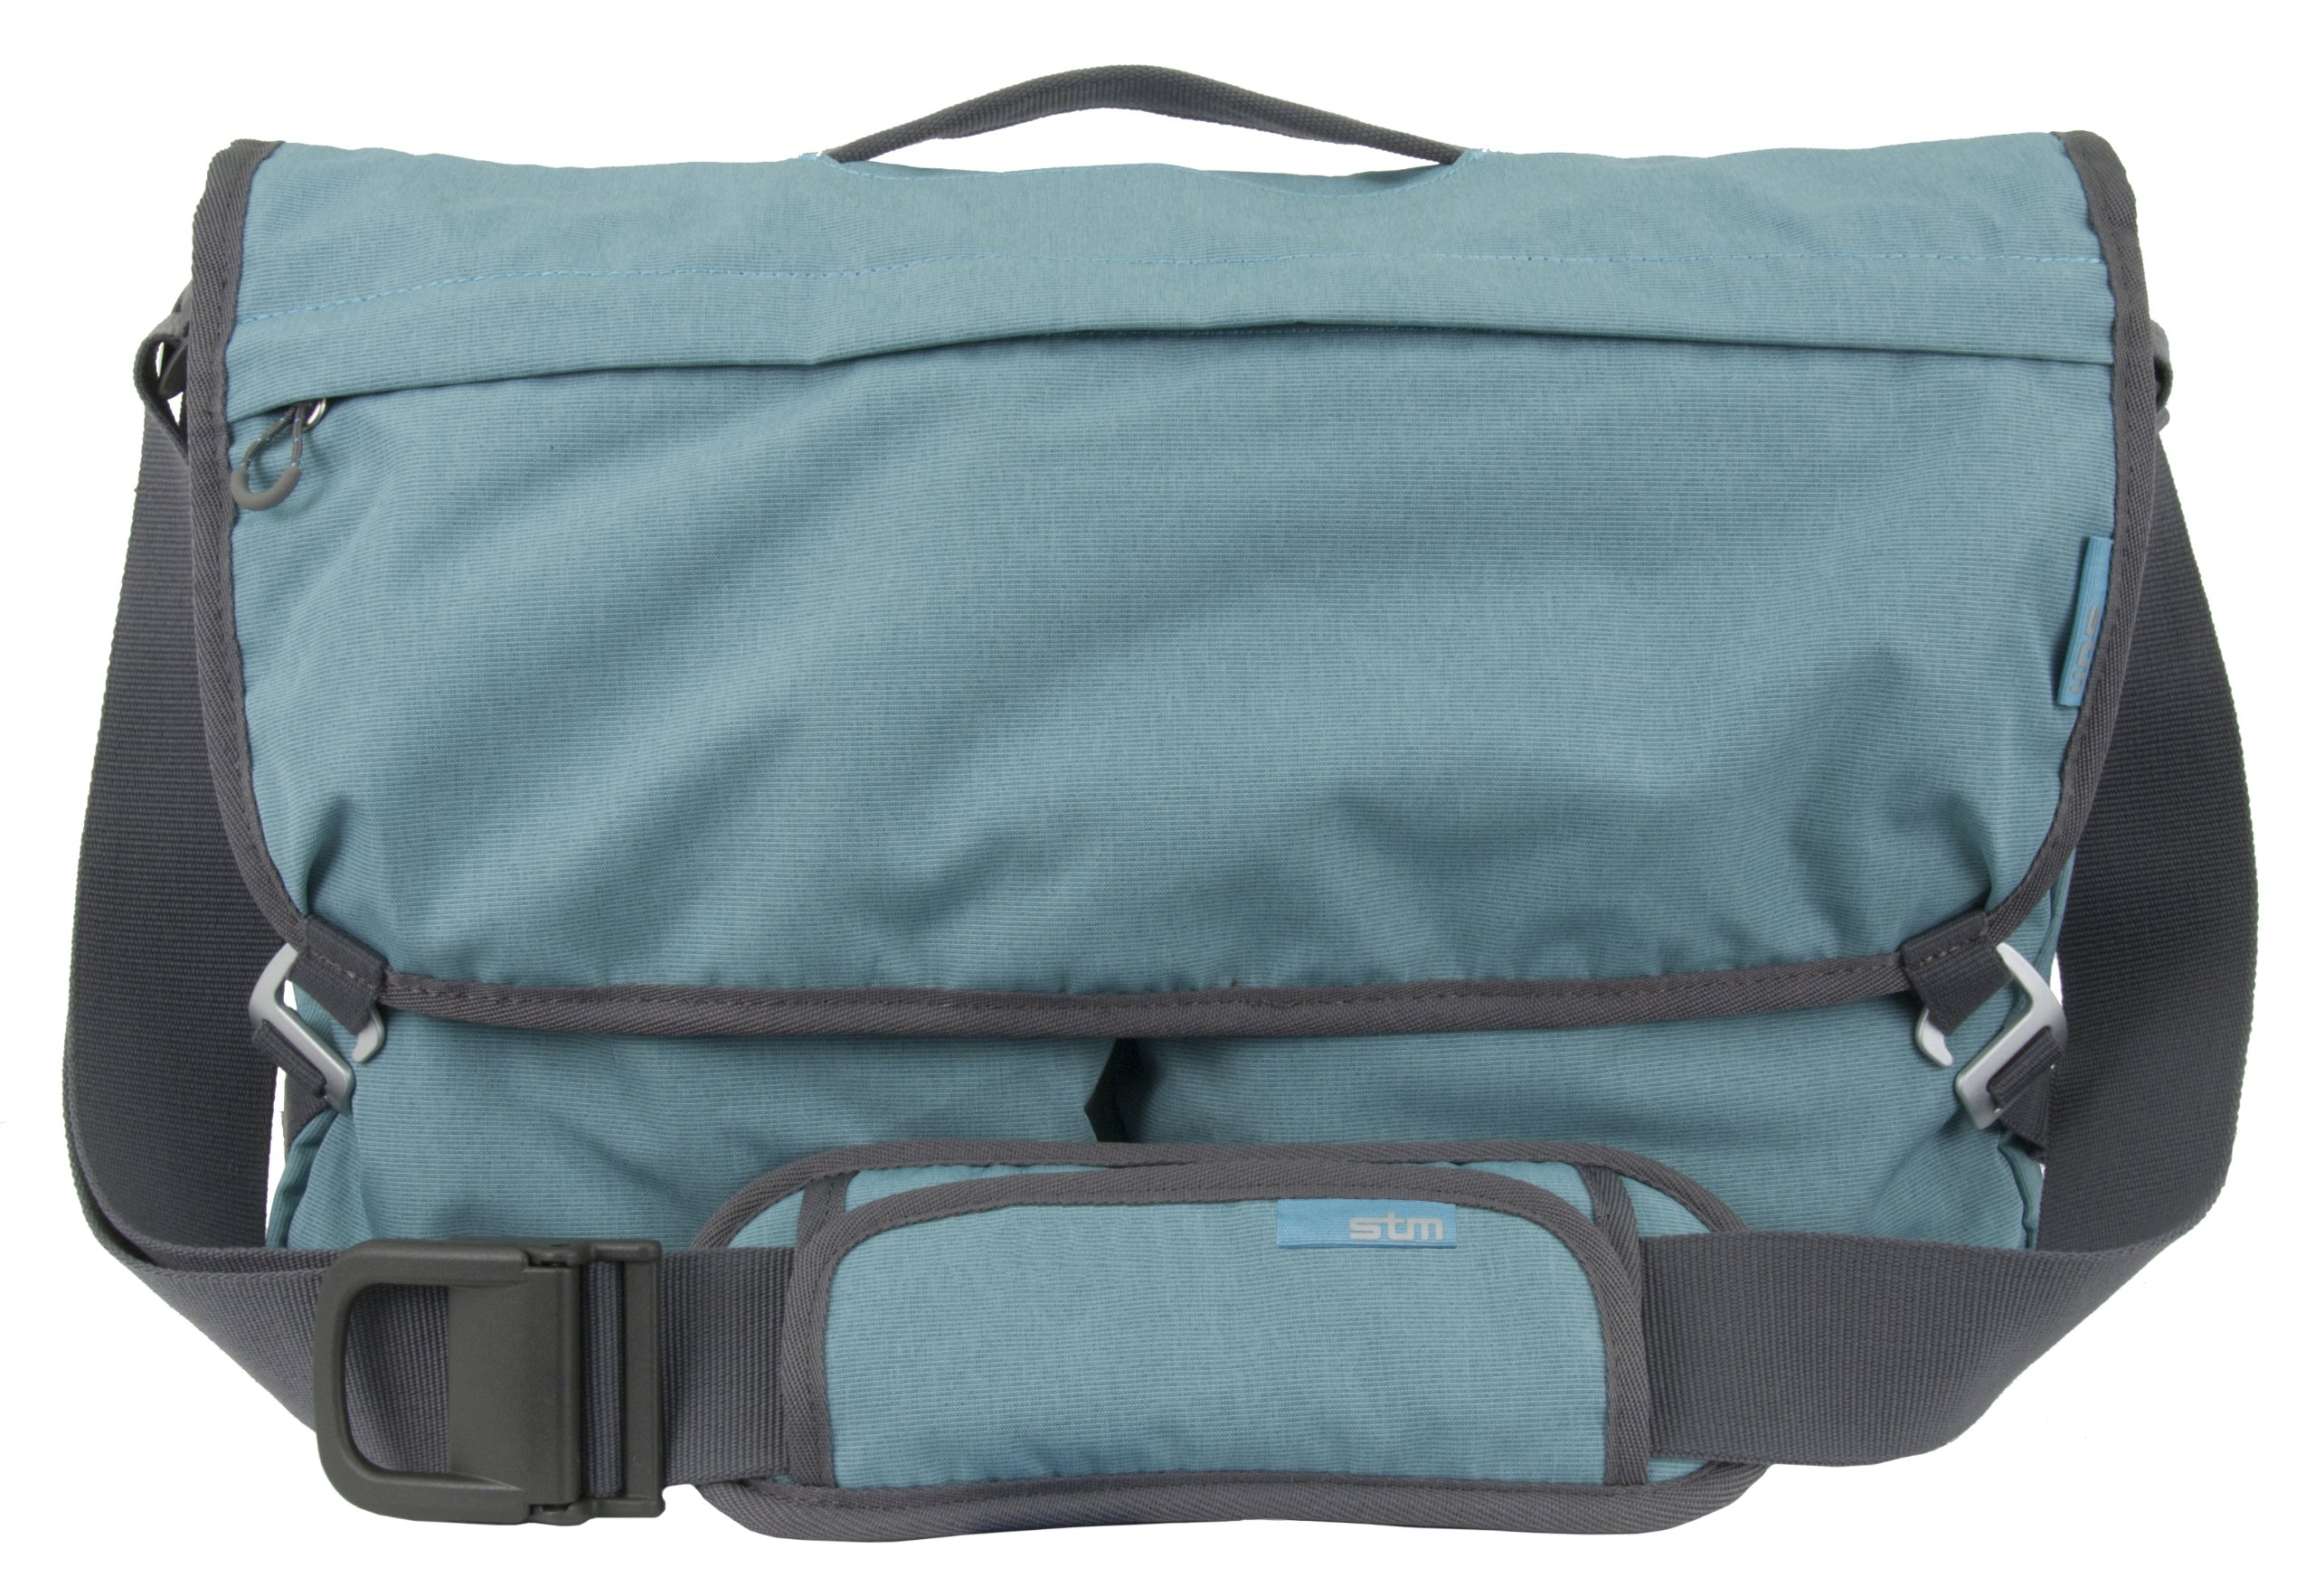 STM Nomad Shoulder Bag with Removable Computer Sleeve and Integrated iPad/Tablet Pocket (XS) for 11-Inch MacBooks and Laptops (dp-3200-18) by STM